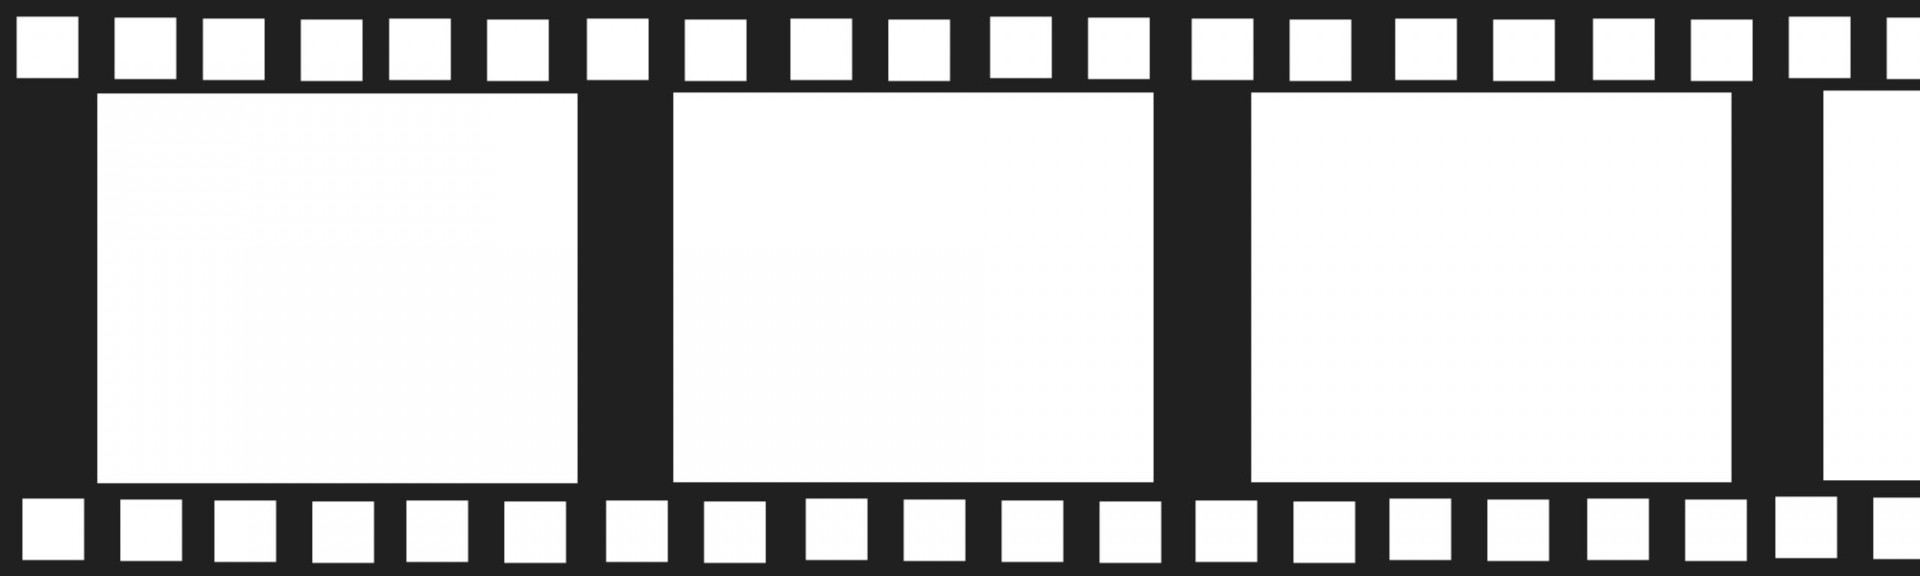 ... Film Strip Clipart - clipartall